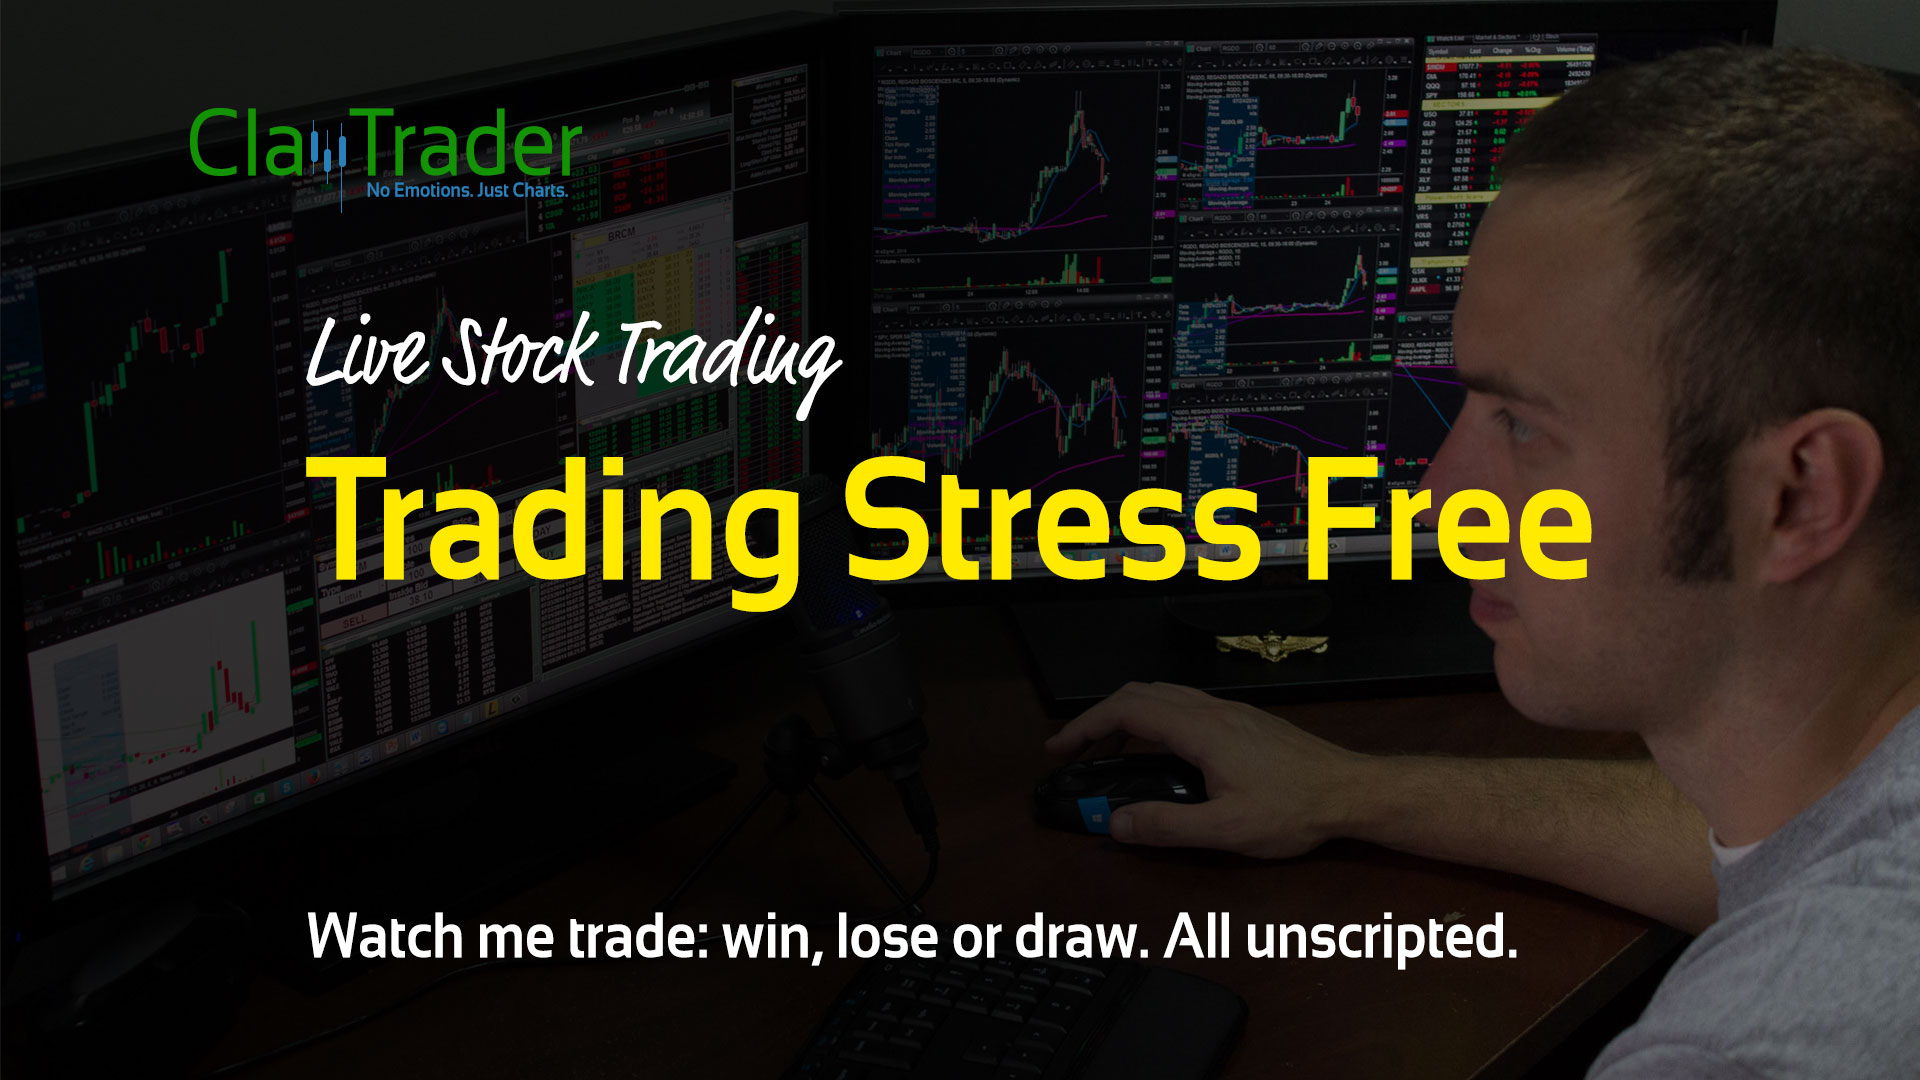 Live Stock Trades - Trading Stress Free